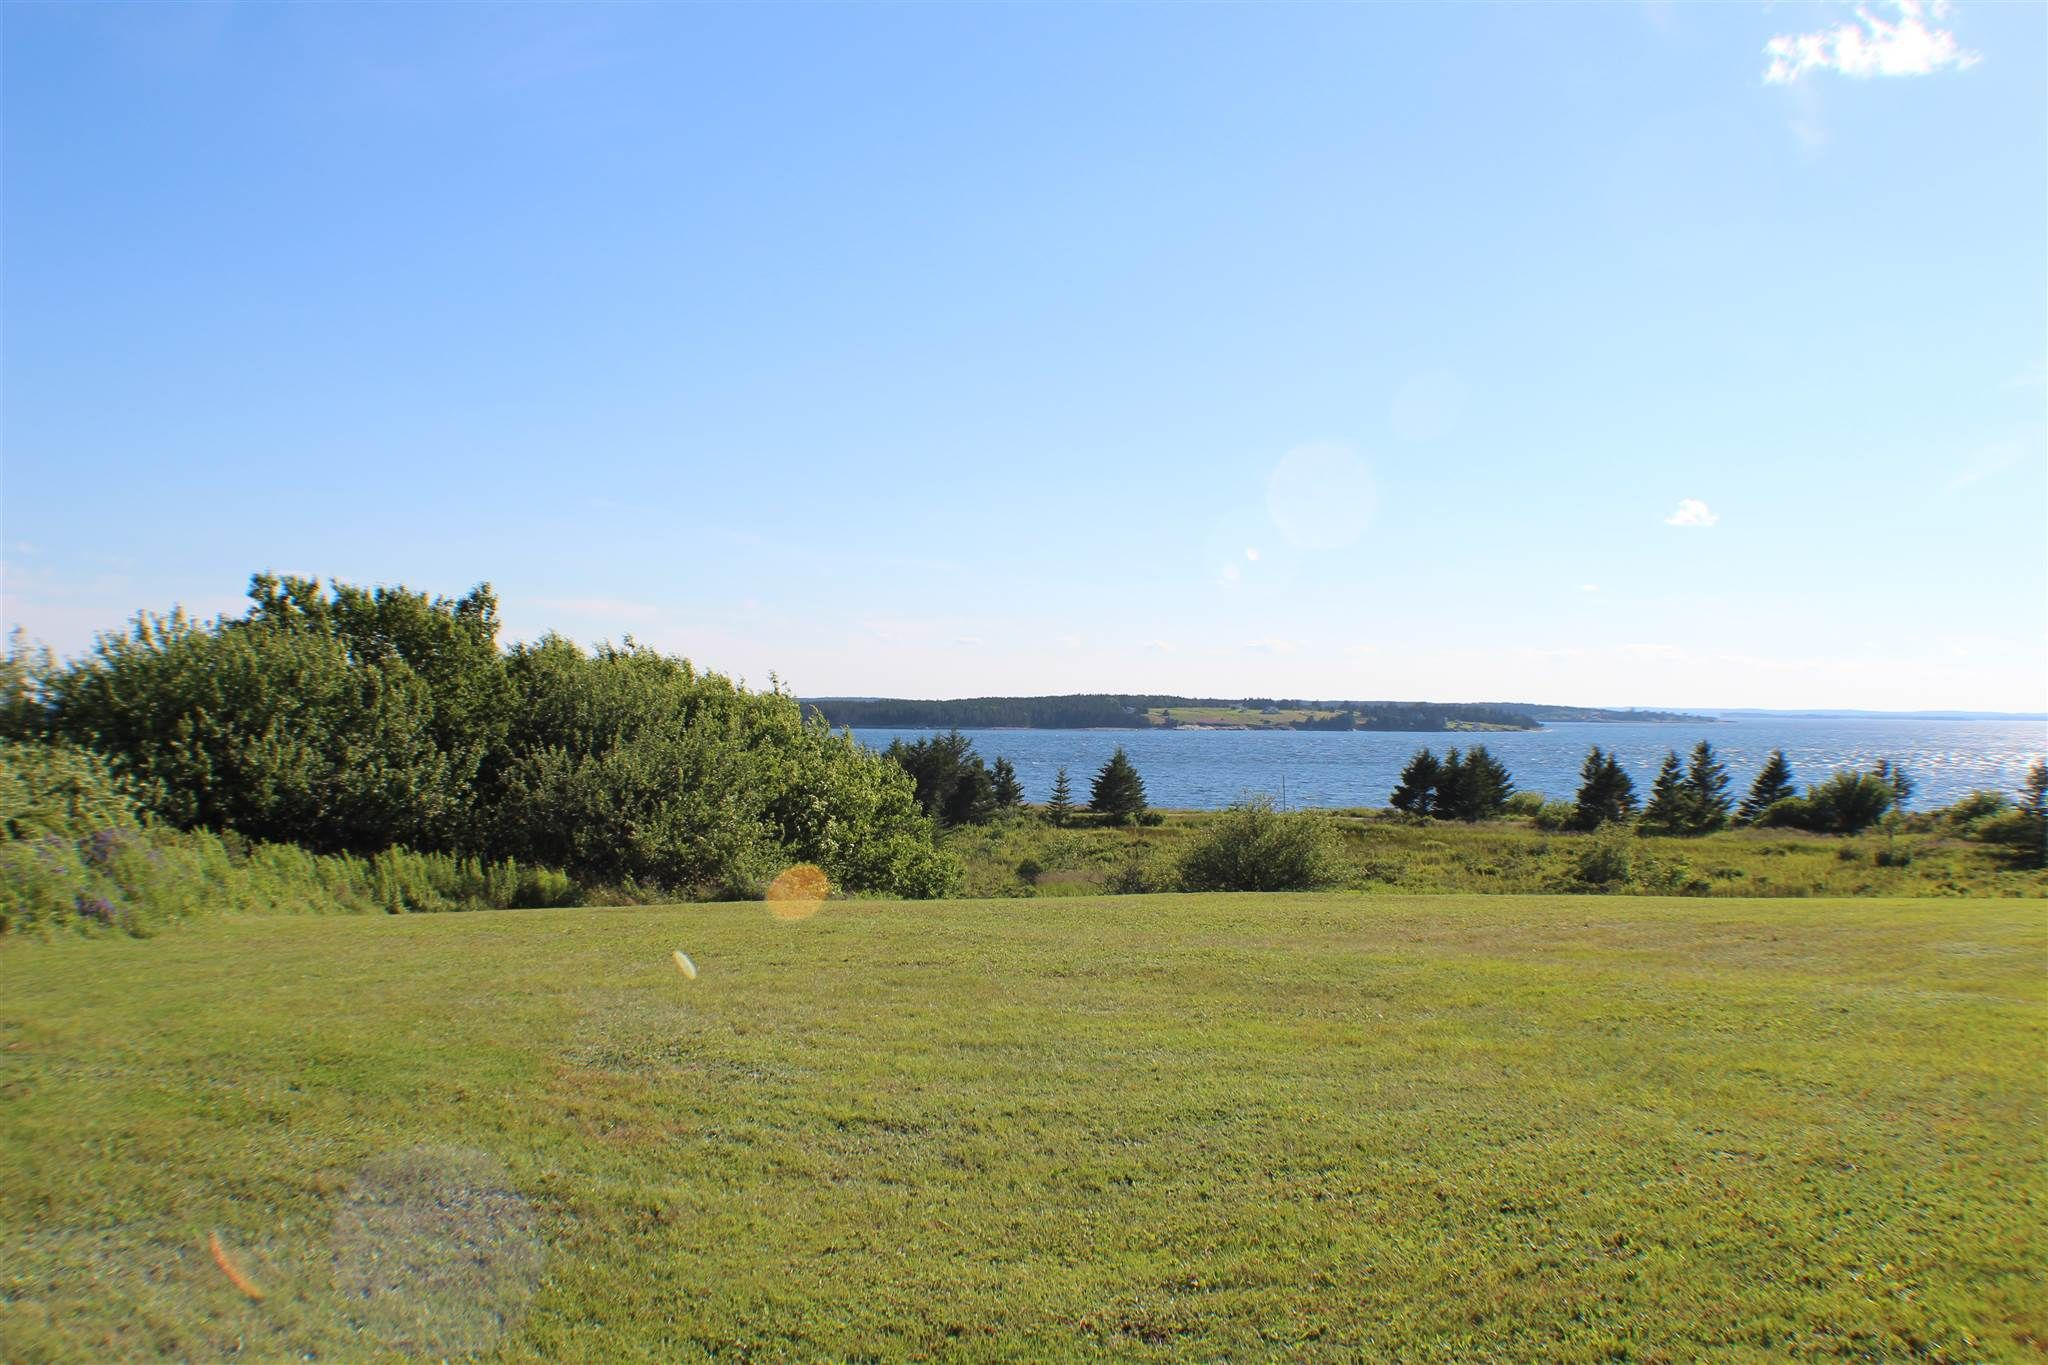 Main Photo: 214 New Harbour Road in Blandford: 405-Lunenburg County Vacant Land for sale (South Shore)  : MLS®# 202108758